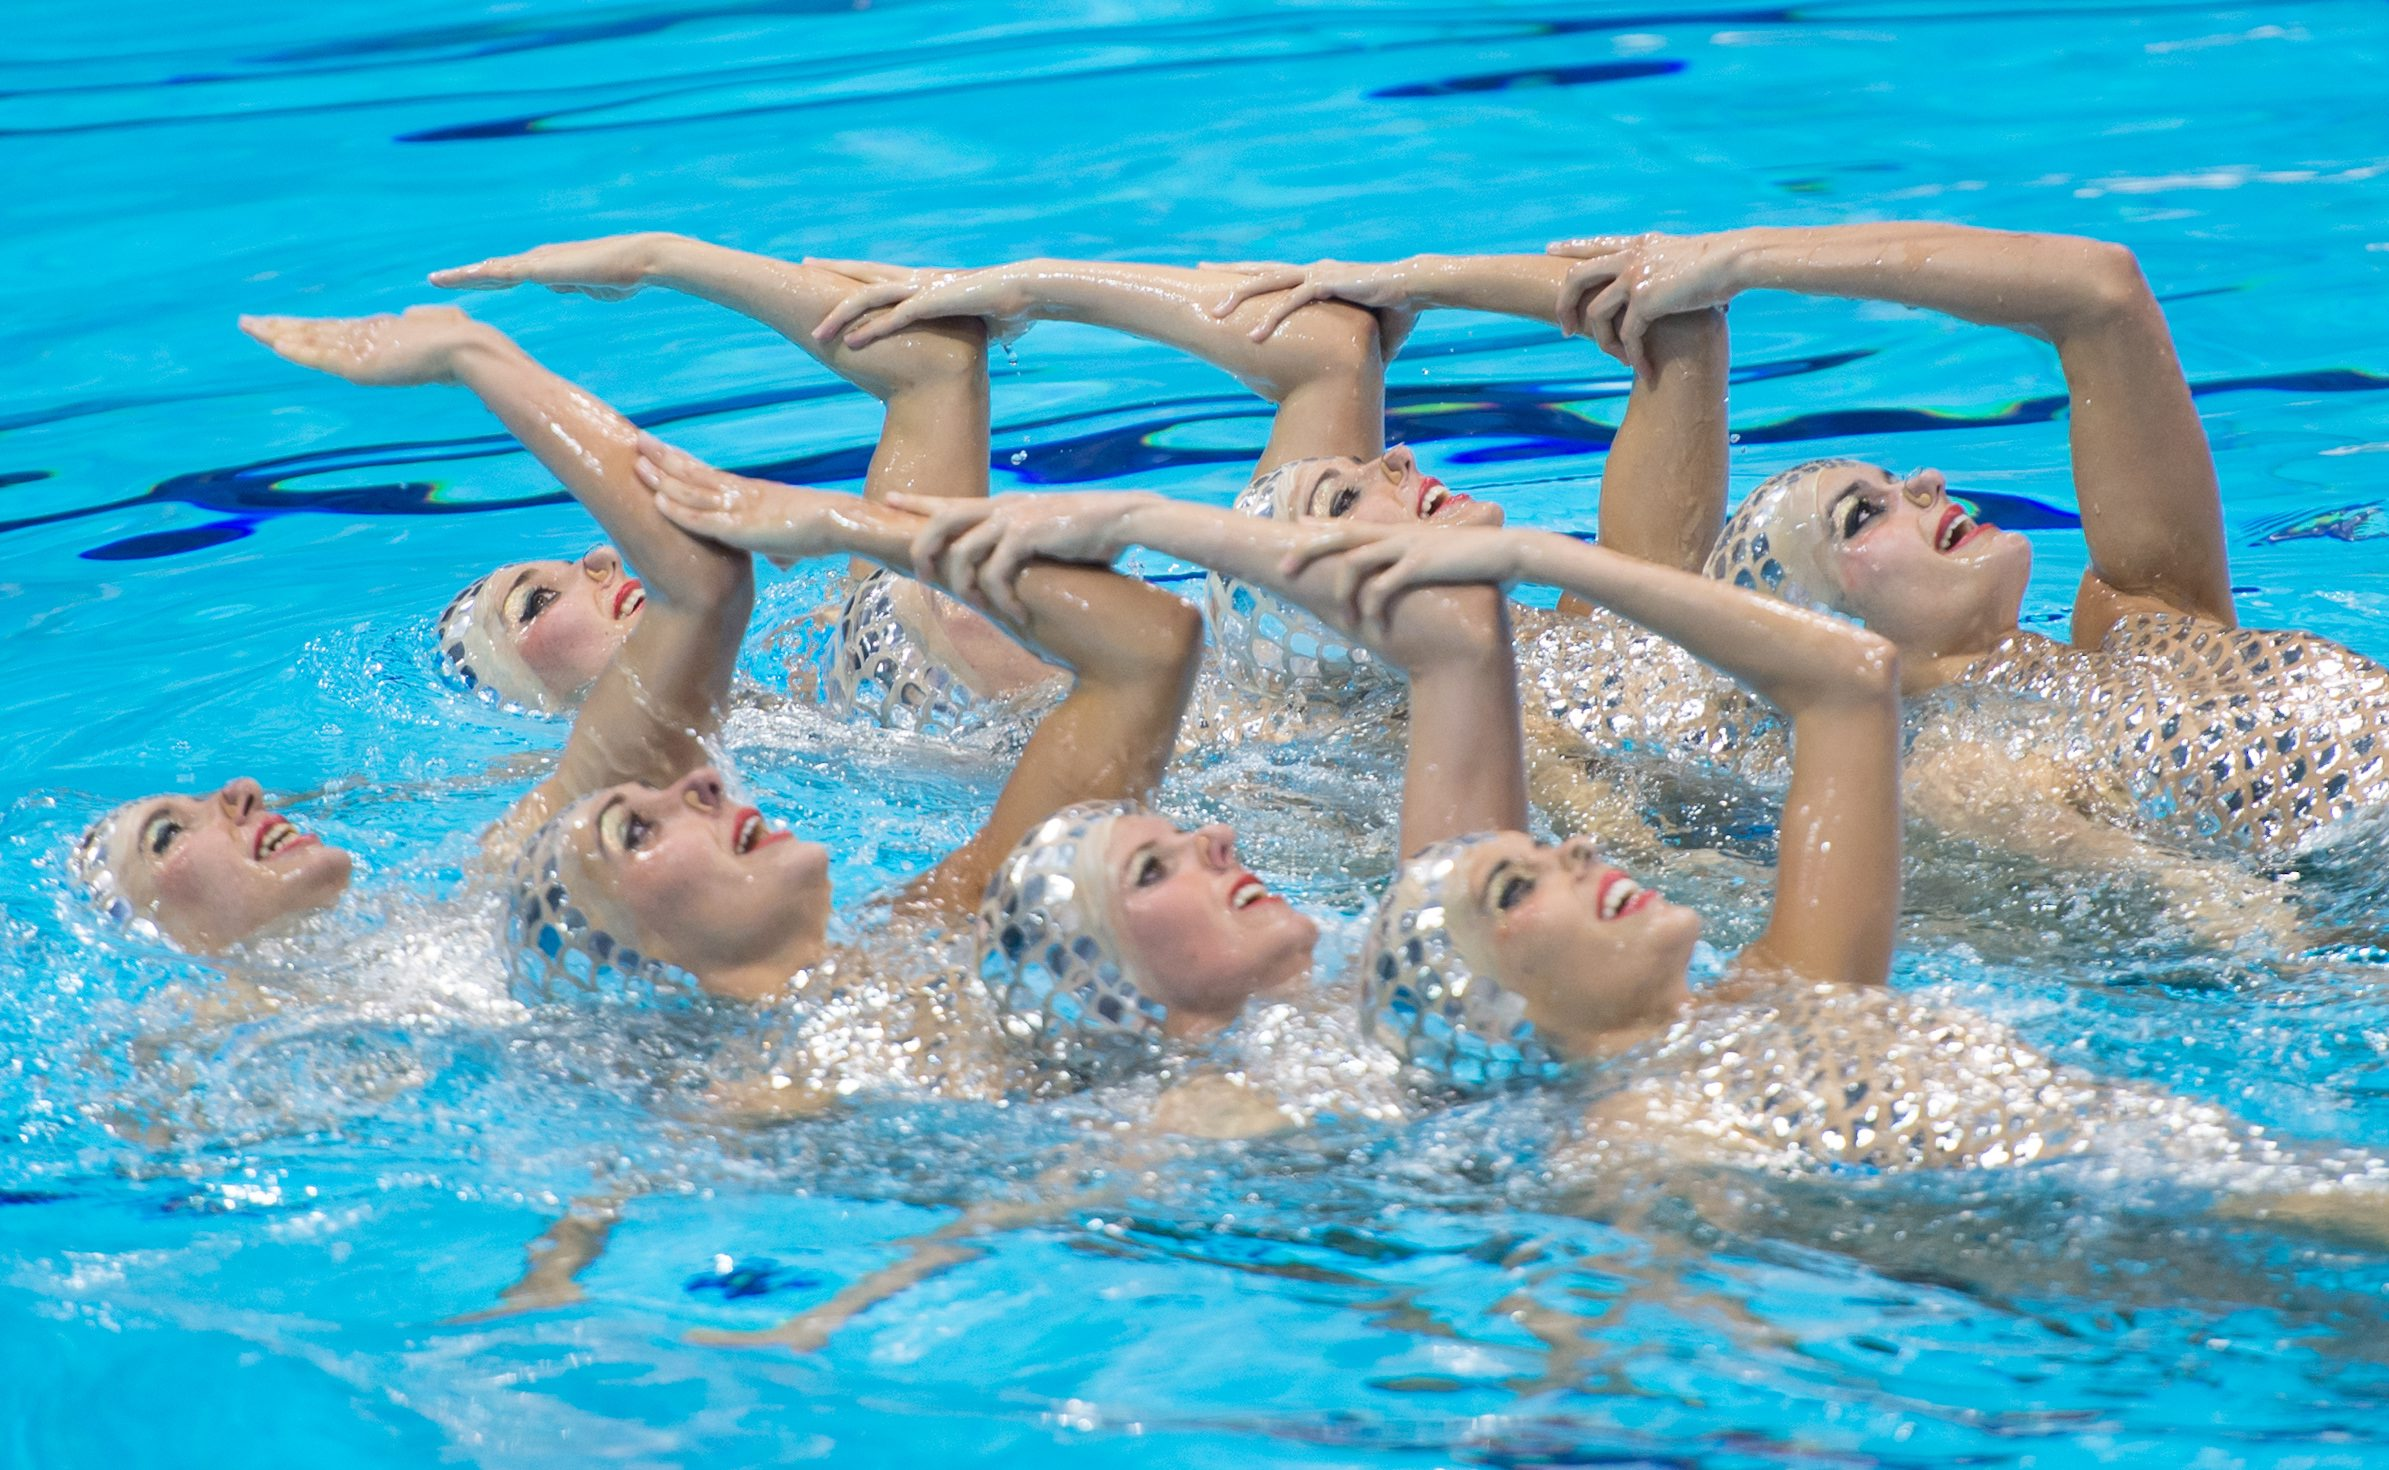 Olympia 2012: Synchronschwimmen